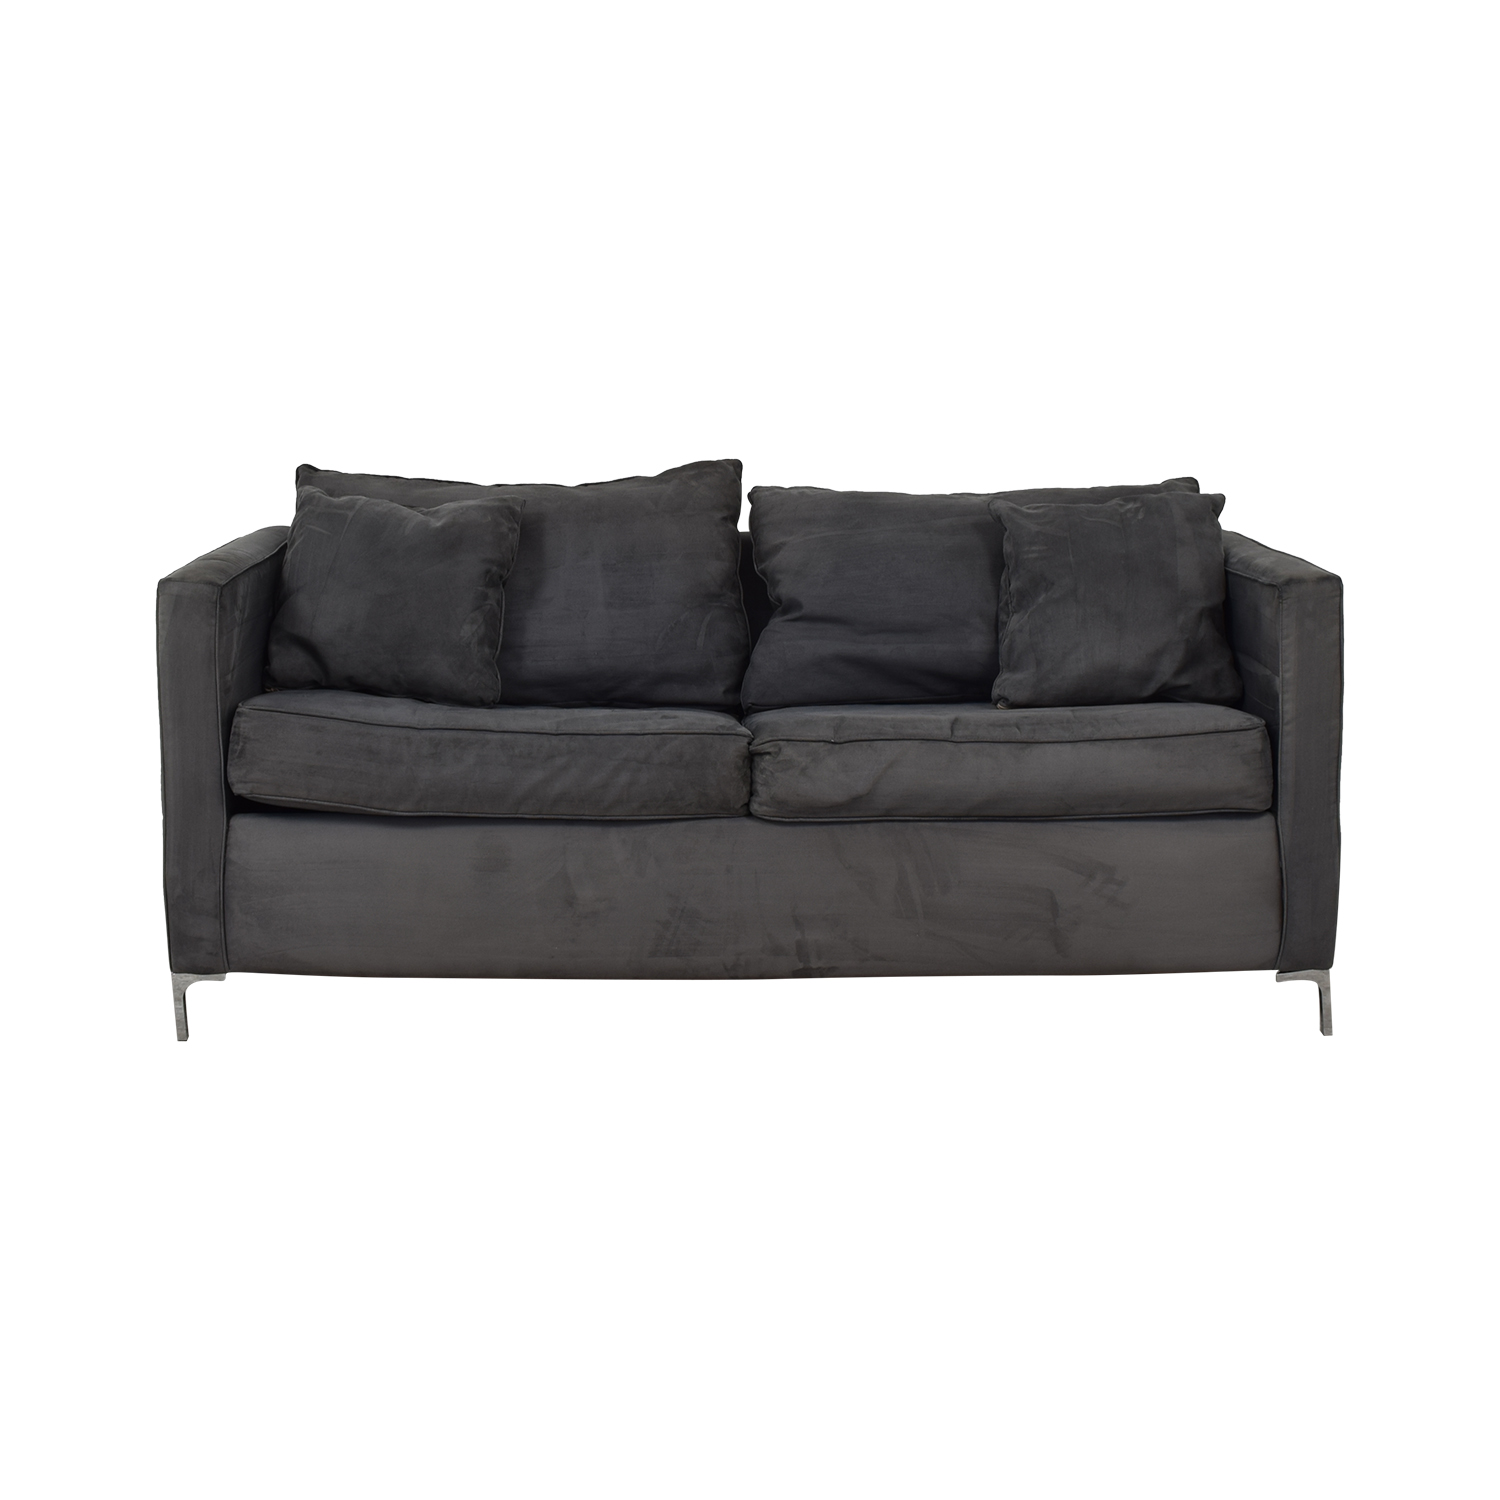 Gray Suede Pull Out Couch for sale